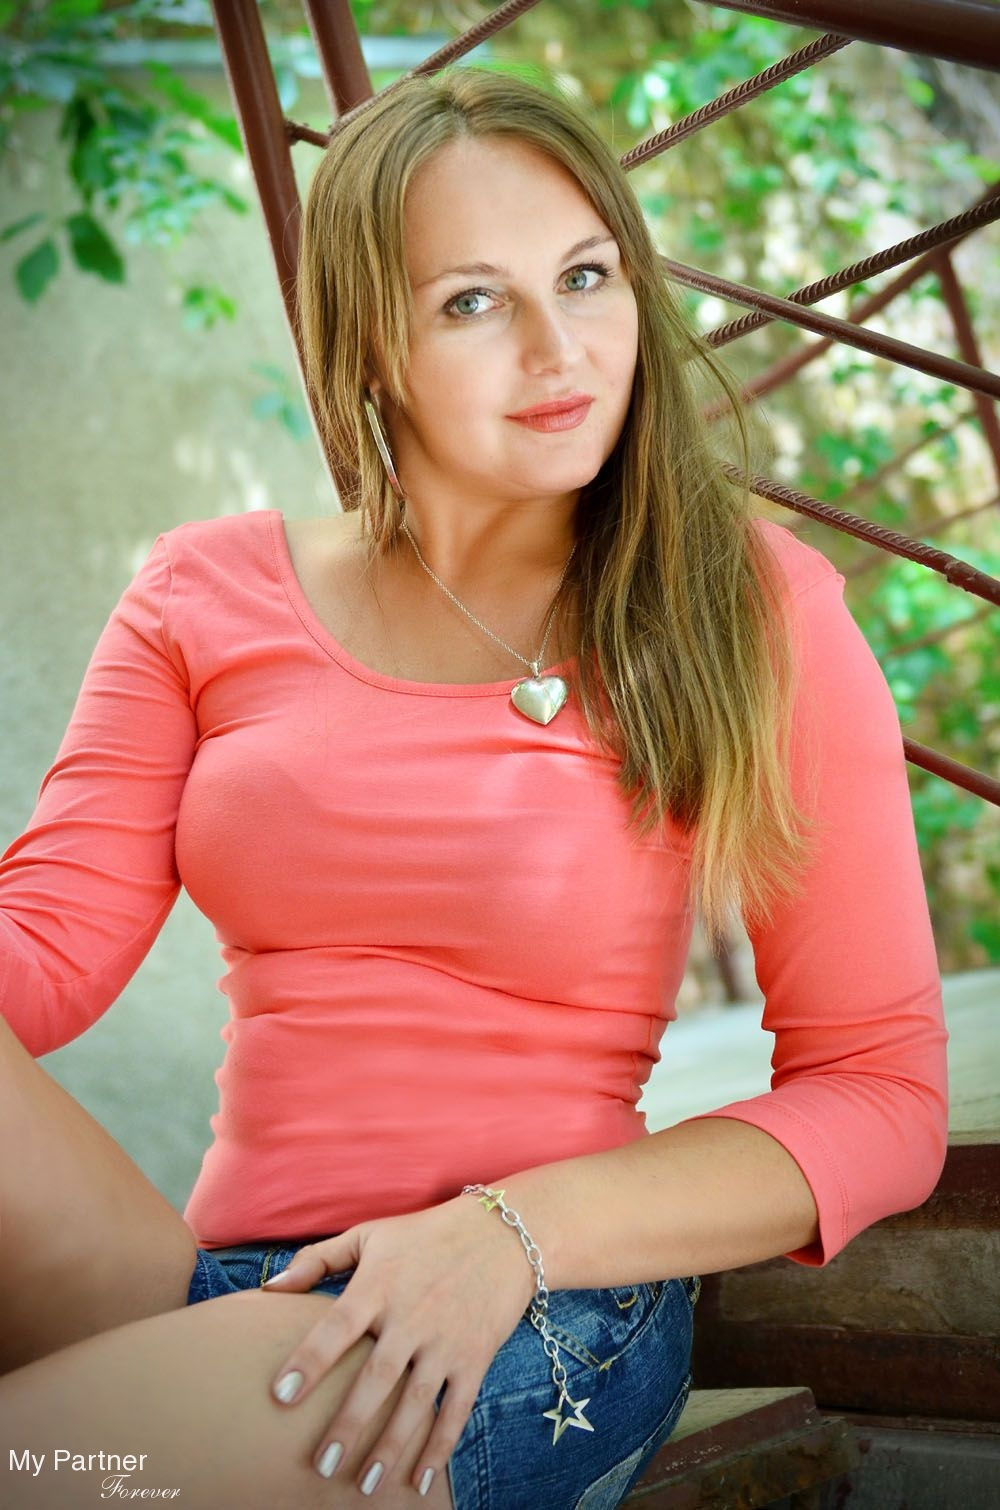 Dating ukraine woman in the usa